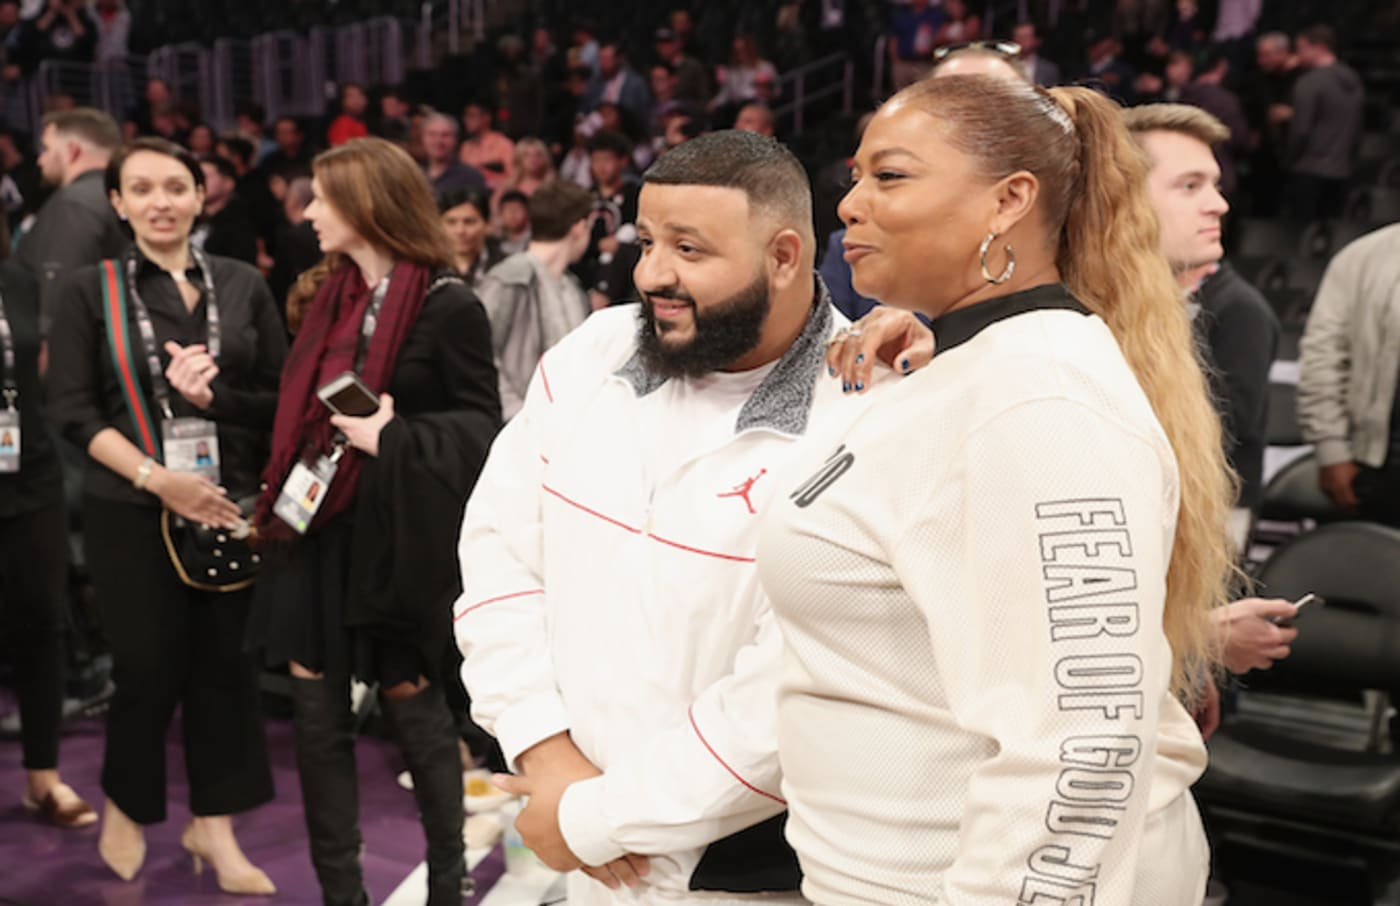 This is a photo of Queen Latifah and DJ Khaled